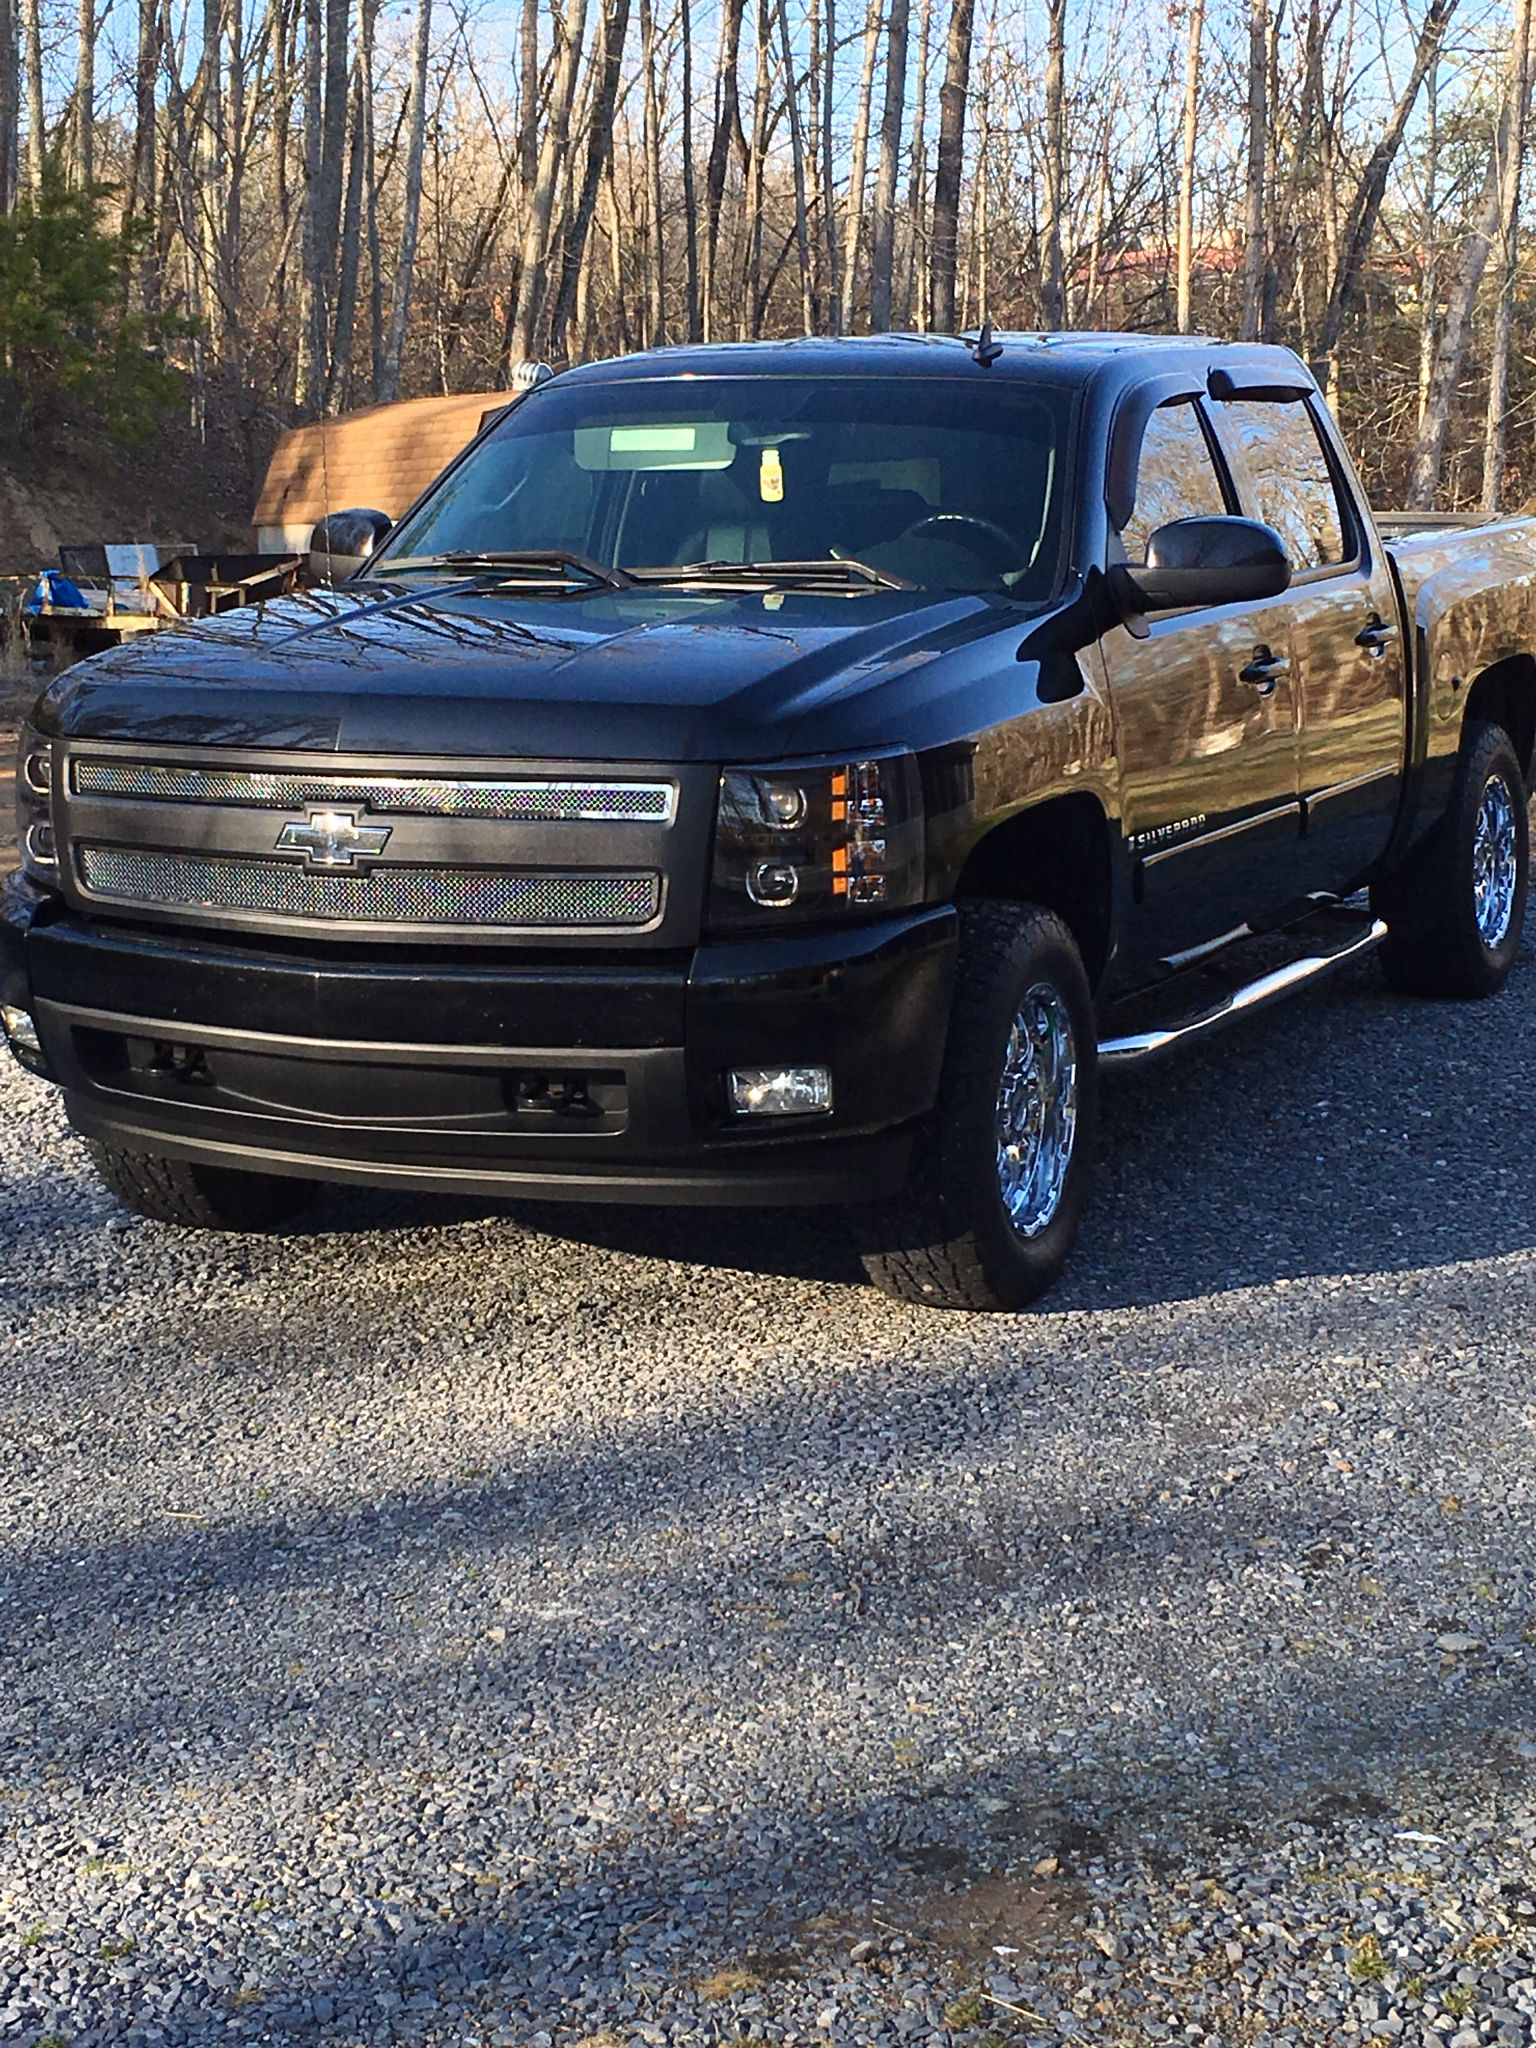 2008 Chevy Silverado Ltz With New Black Halo Headlights By Vipmotoz On Ebay